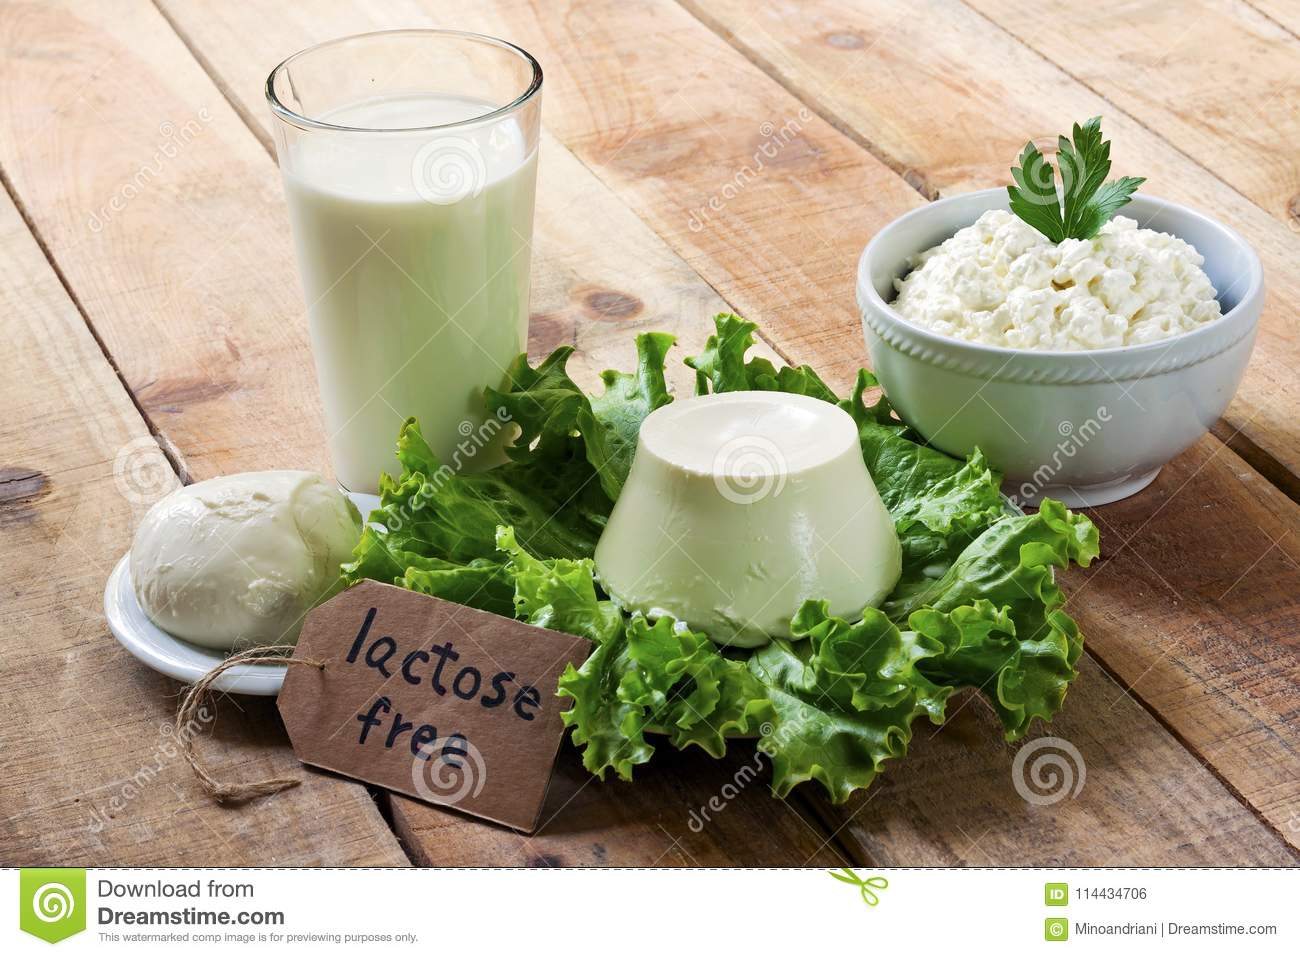 Lactose free - food with background